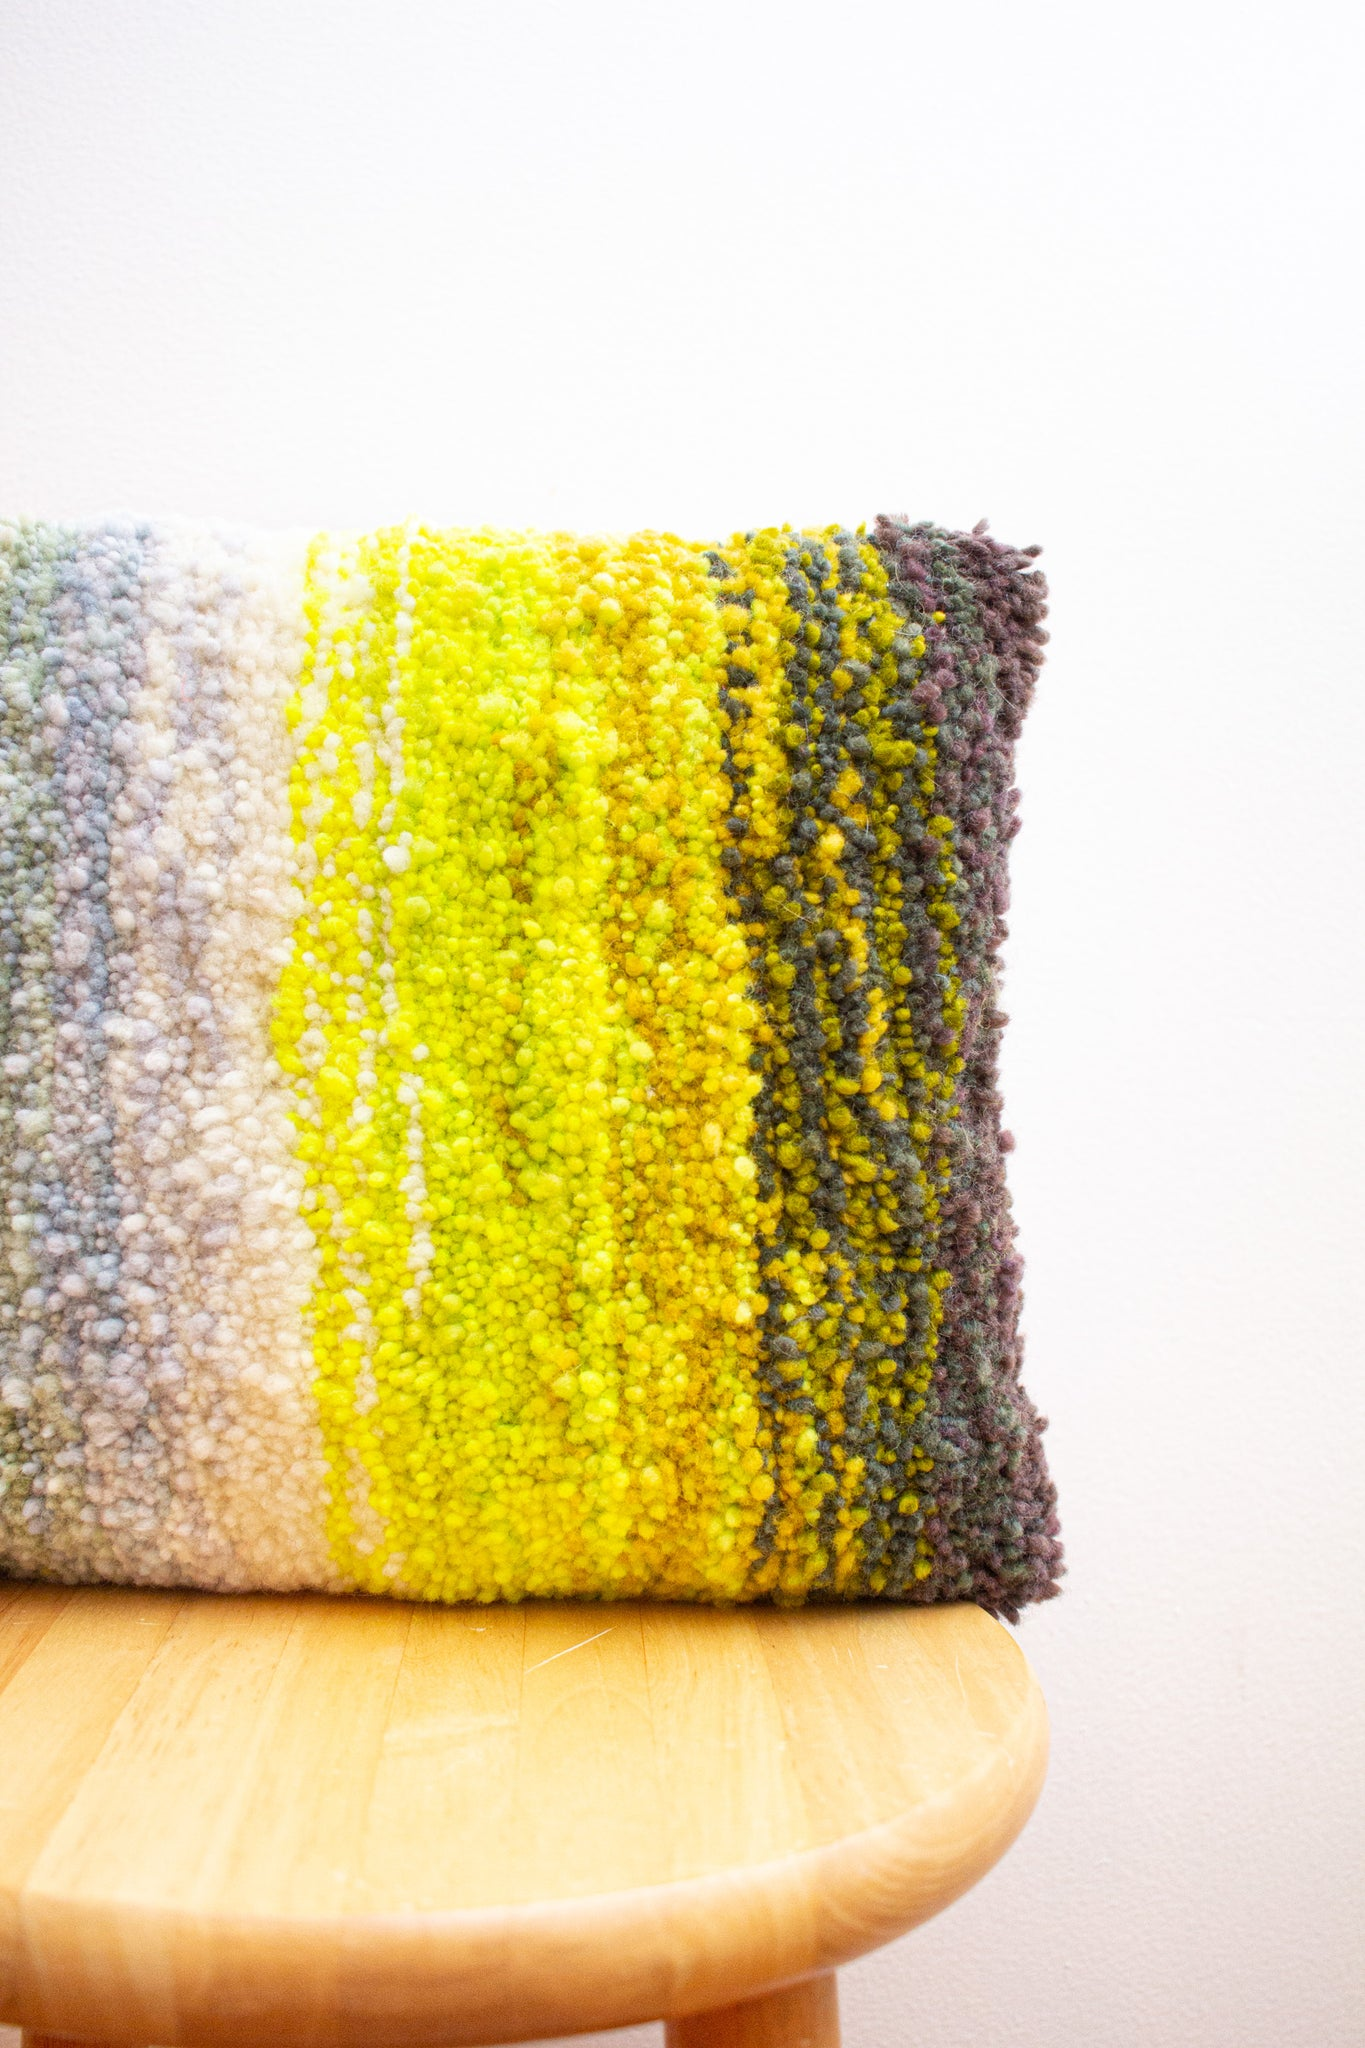 GRADIENT square pillow no. 2